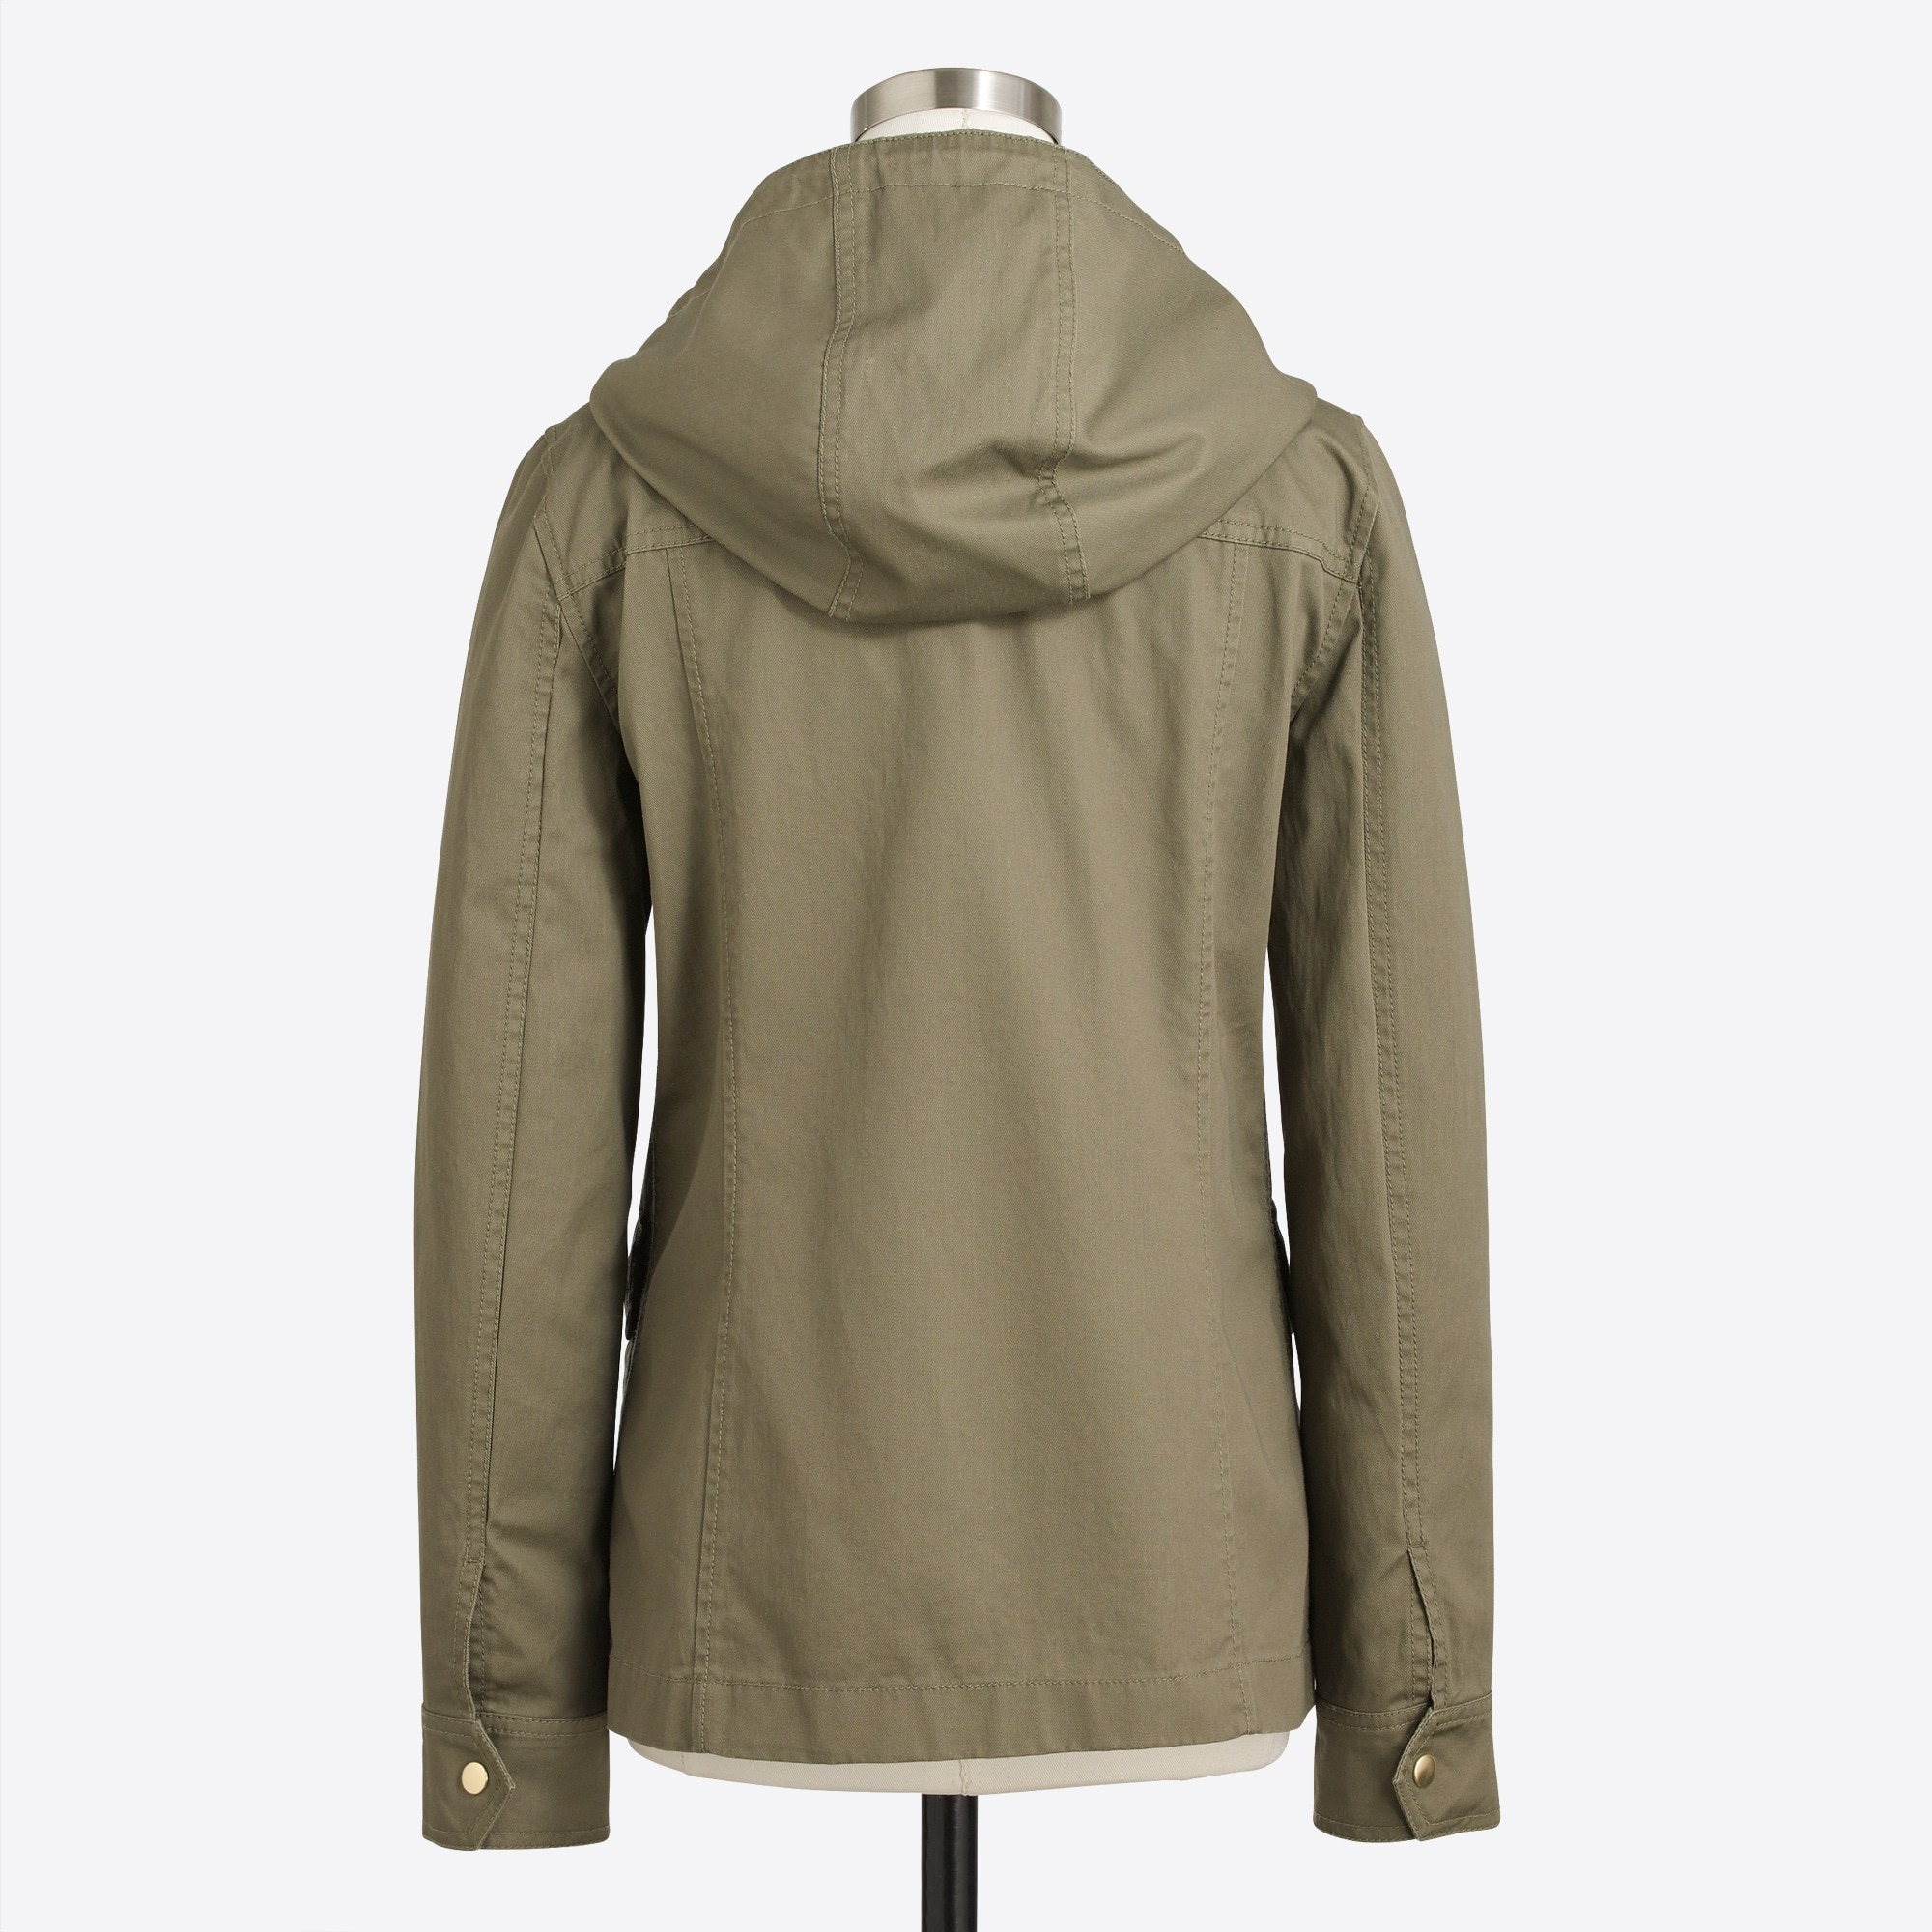 Image 4 for Resin-coated twill jacket with hood